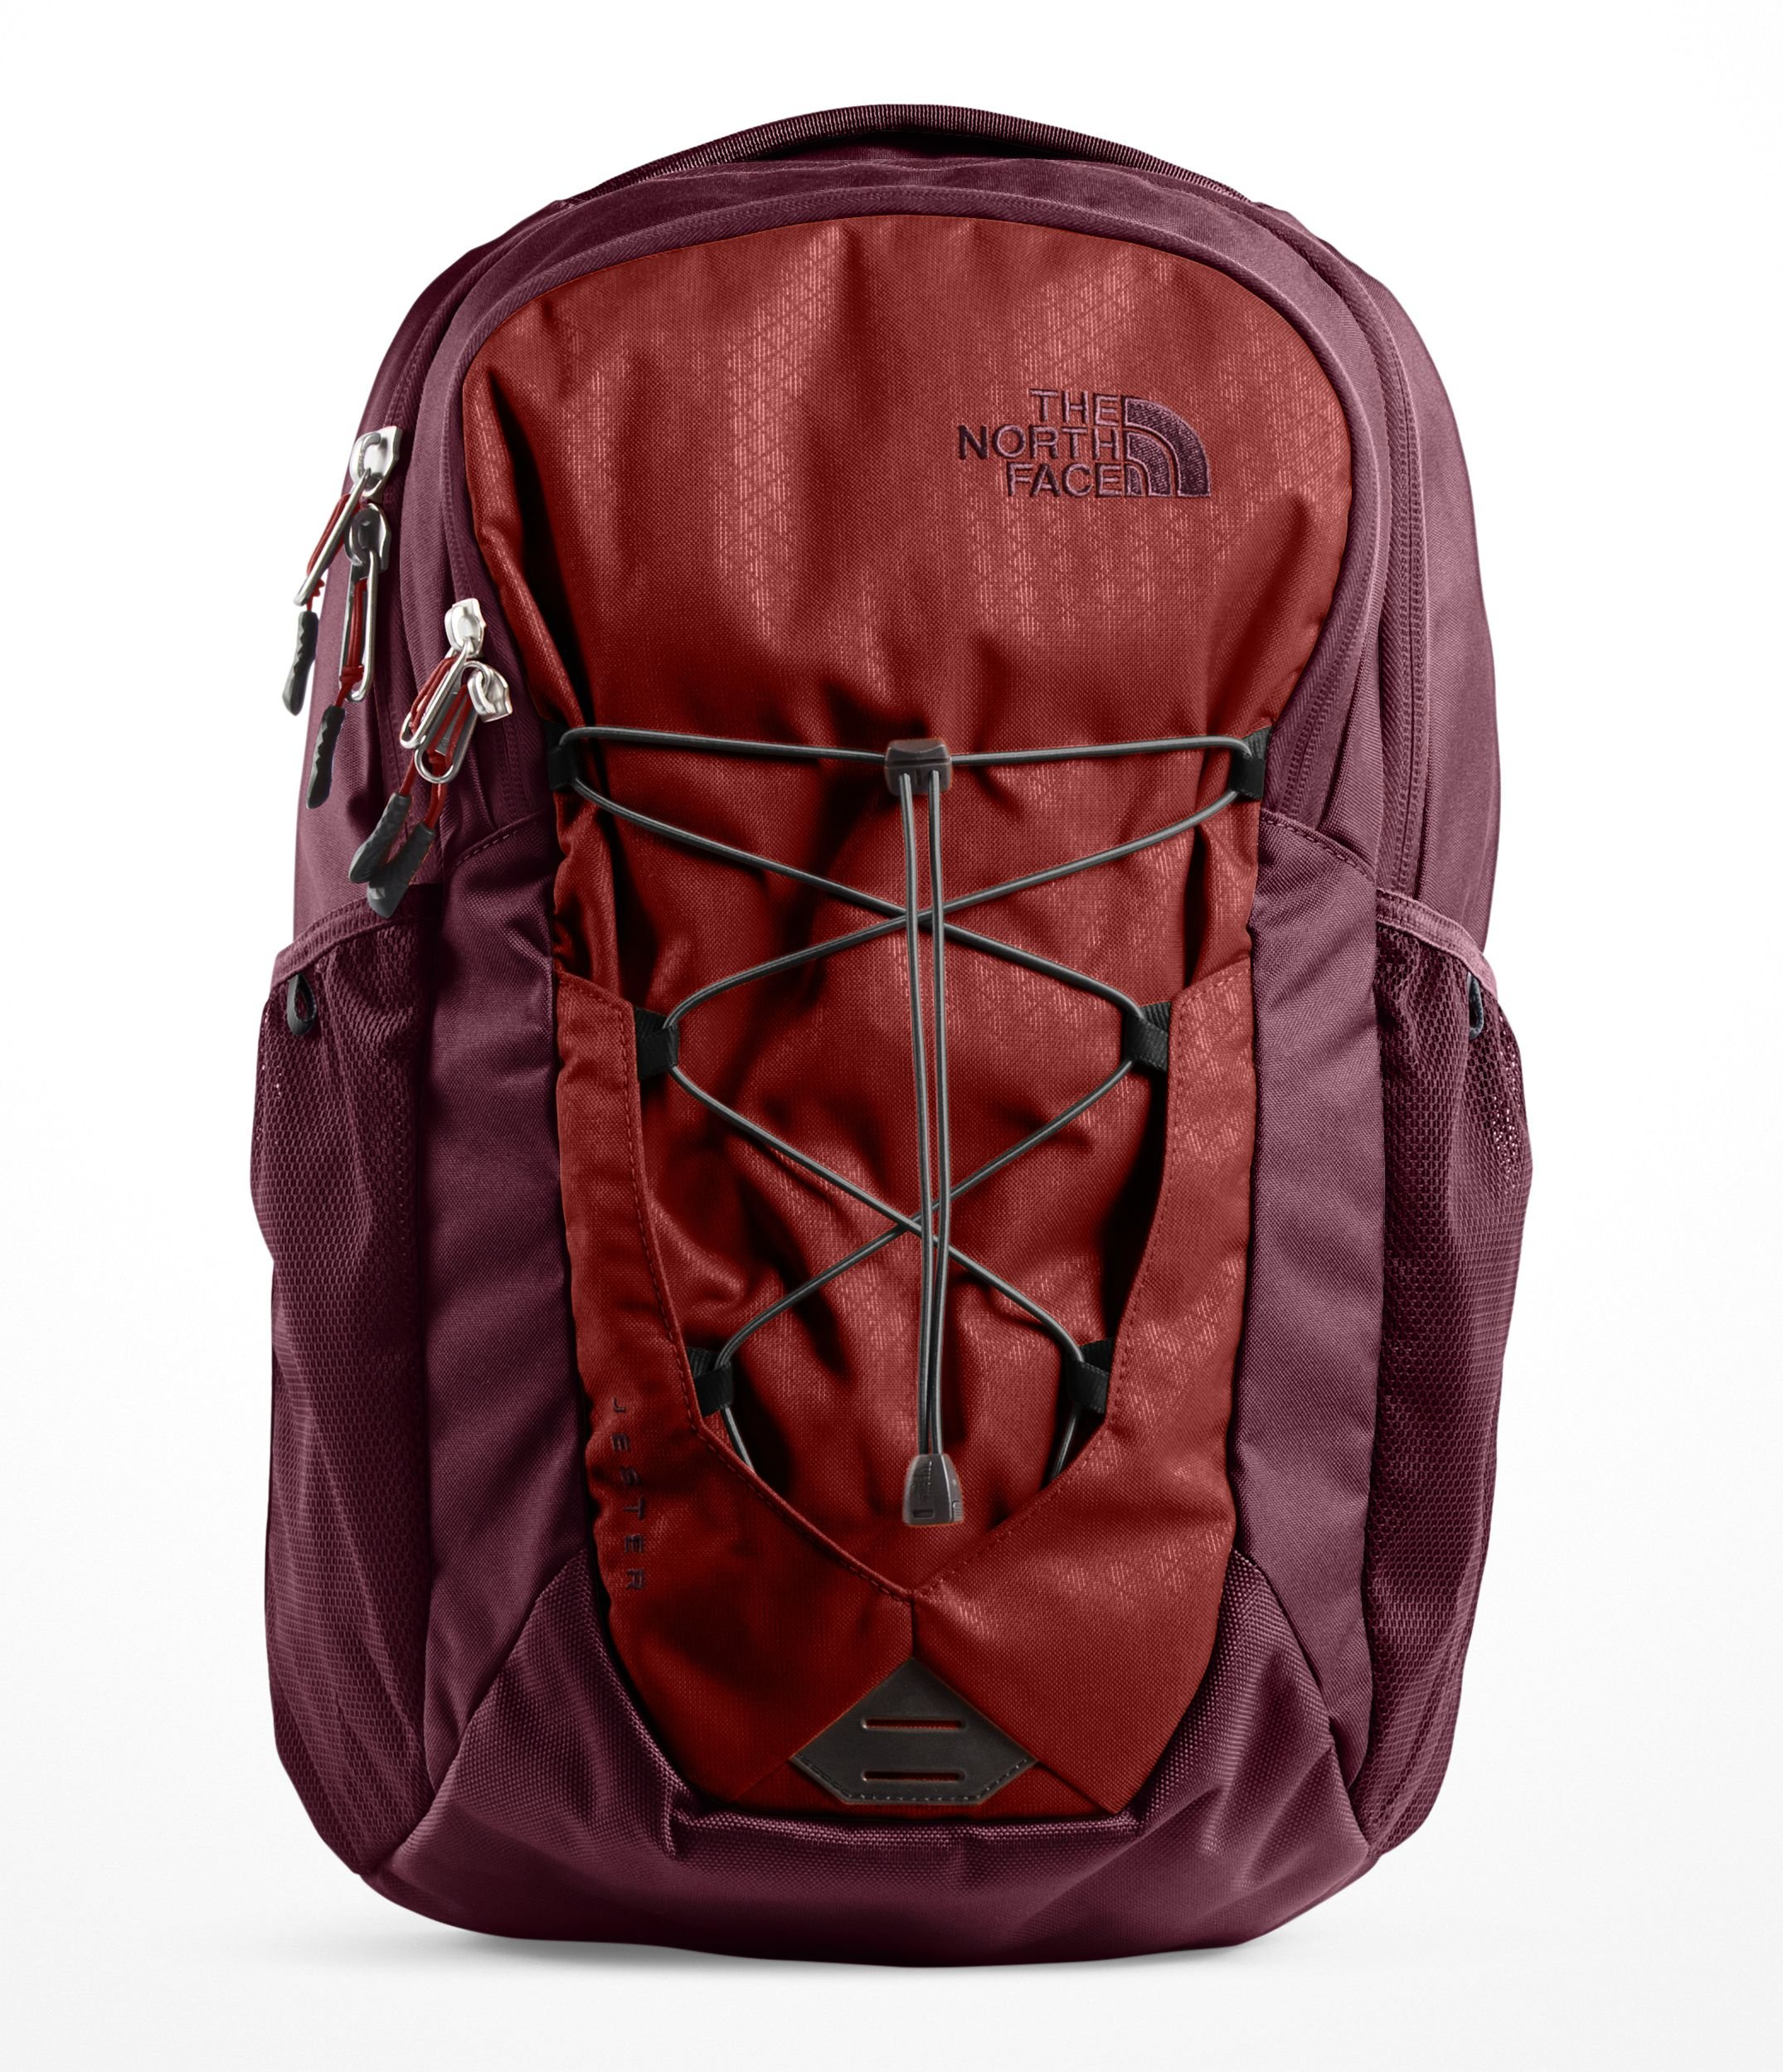 The North Face Jester Backpack, Caldera Red/Sequoia Red by The North Face